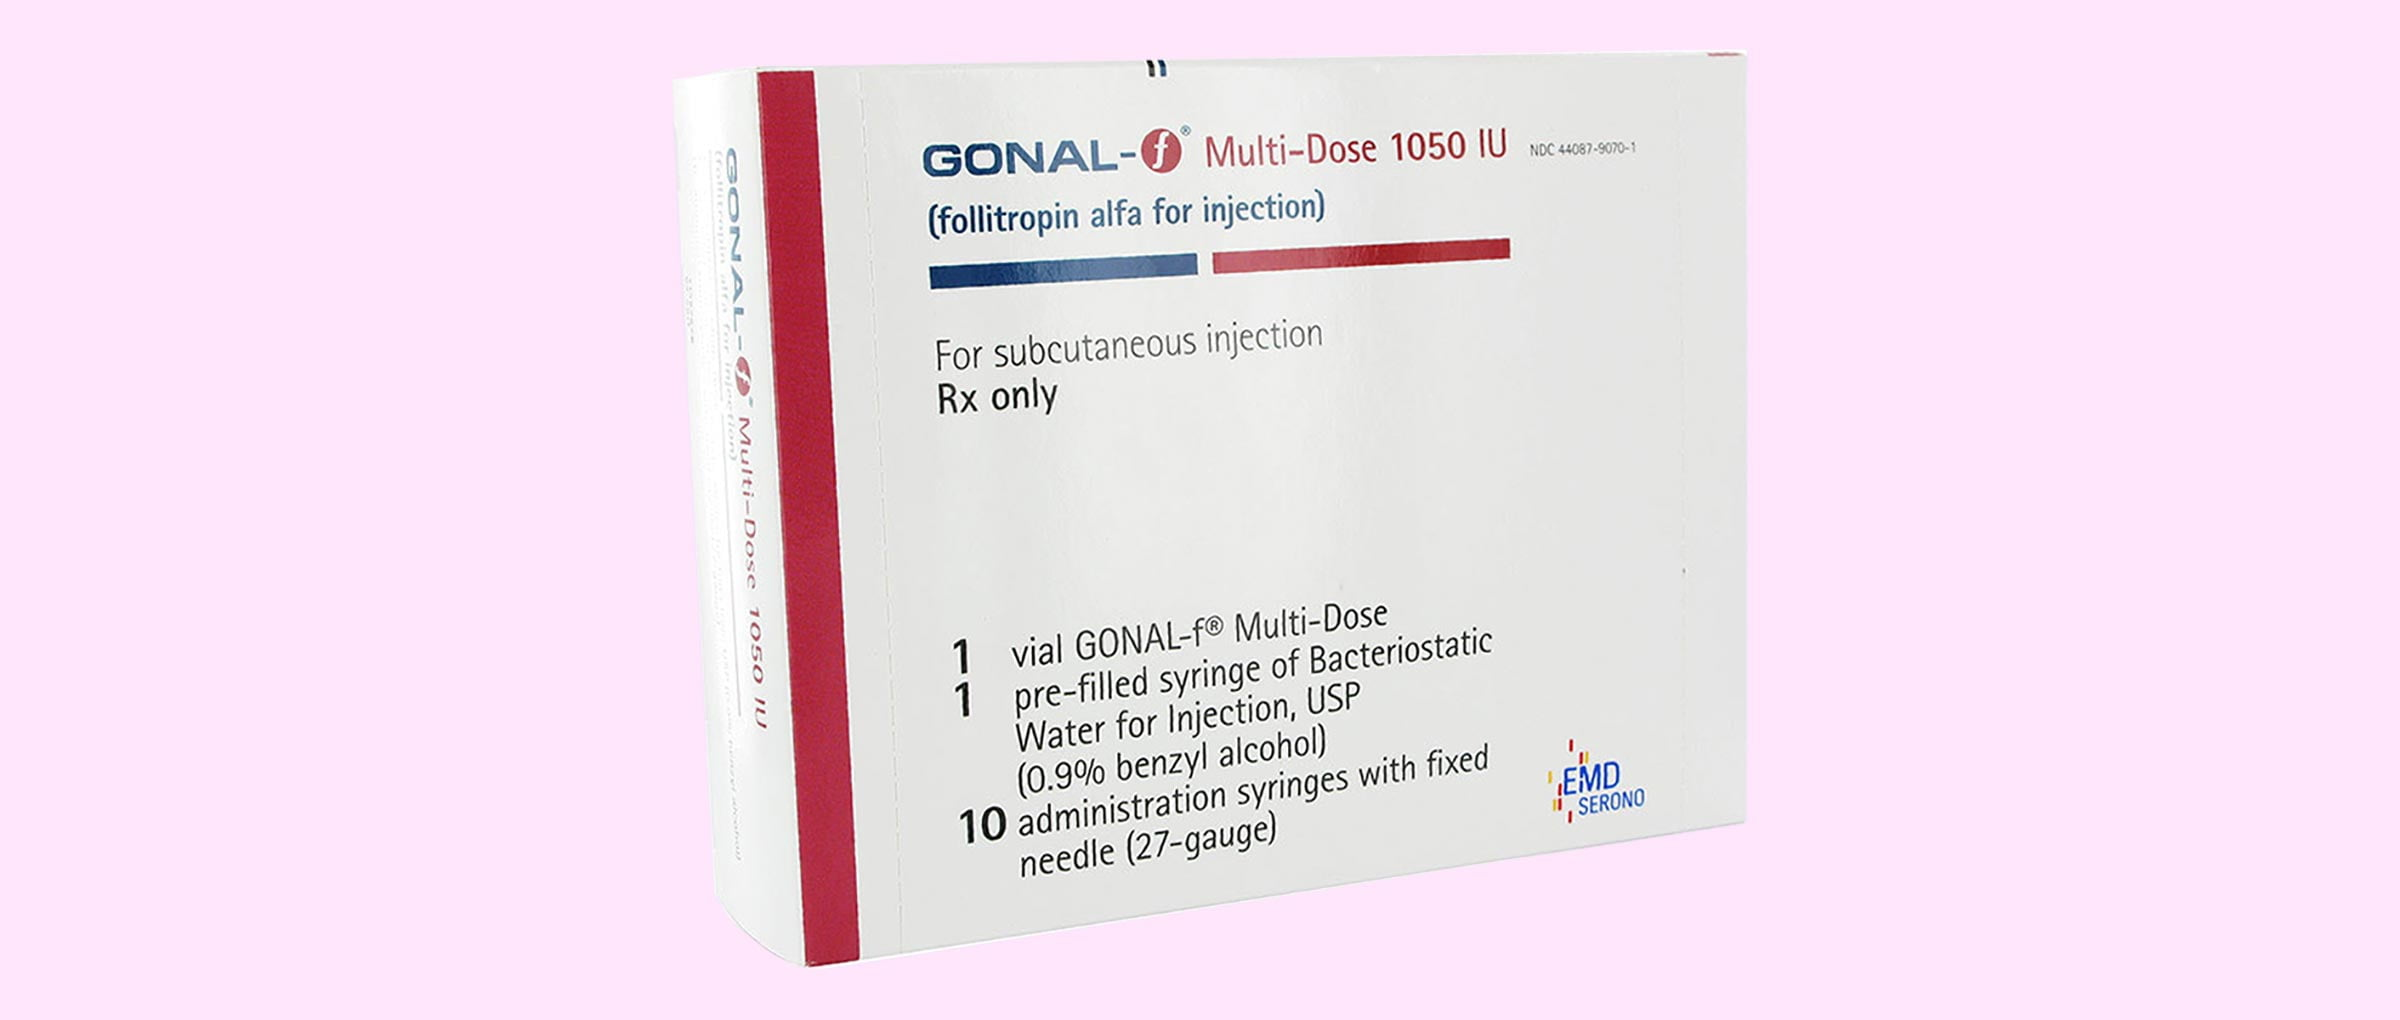 Gonal-f 1050 packaging